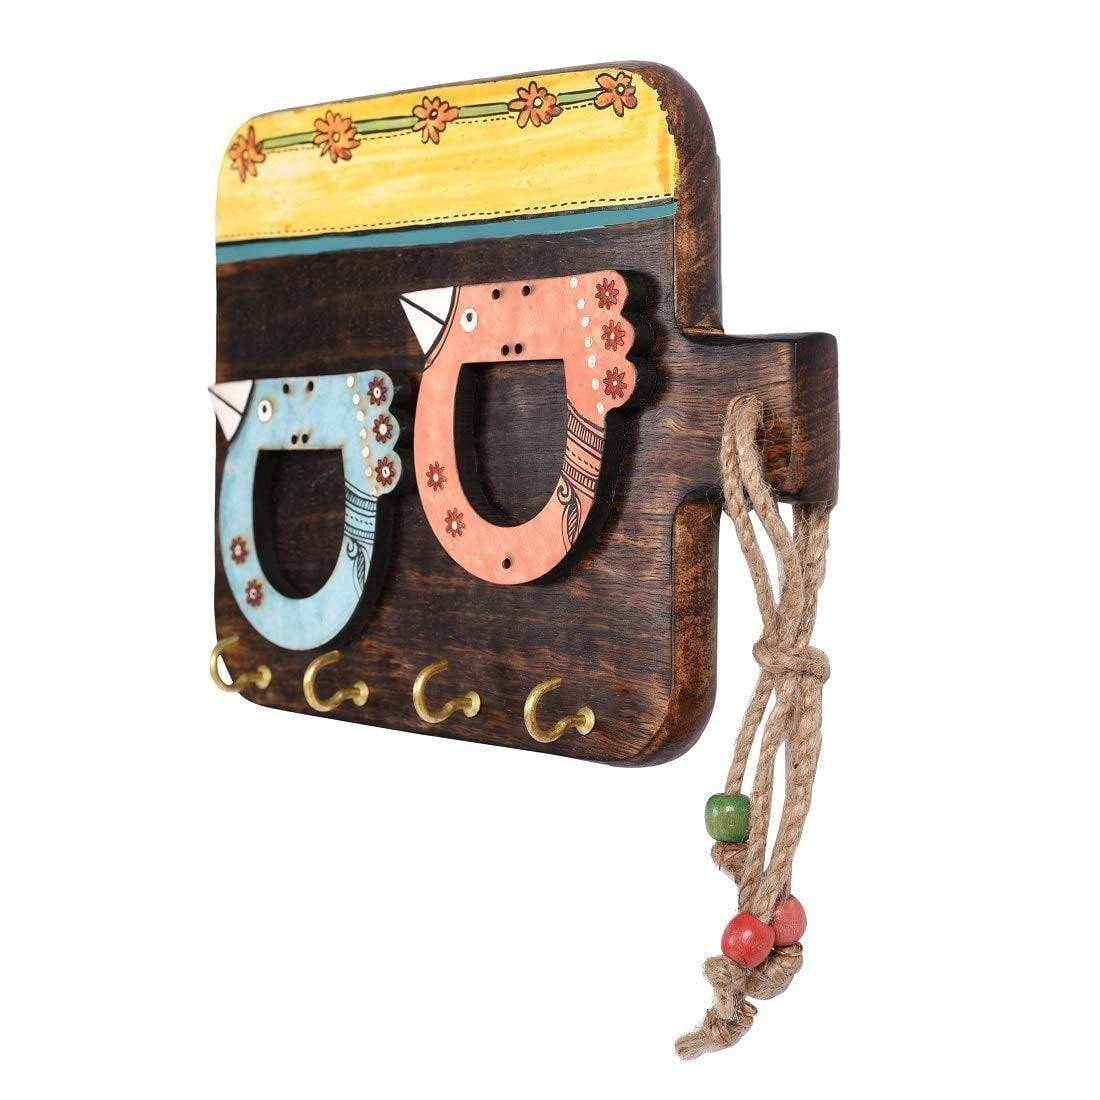 Handmade Wooden Decorative Key Holder For Wall